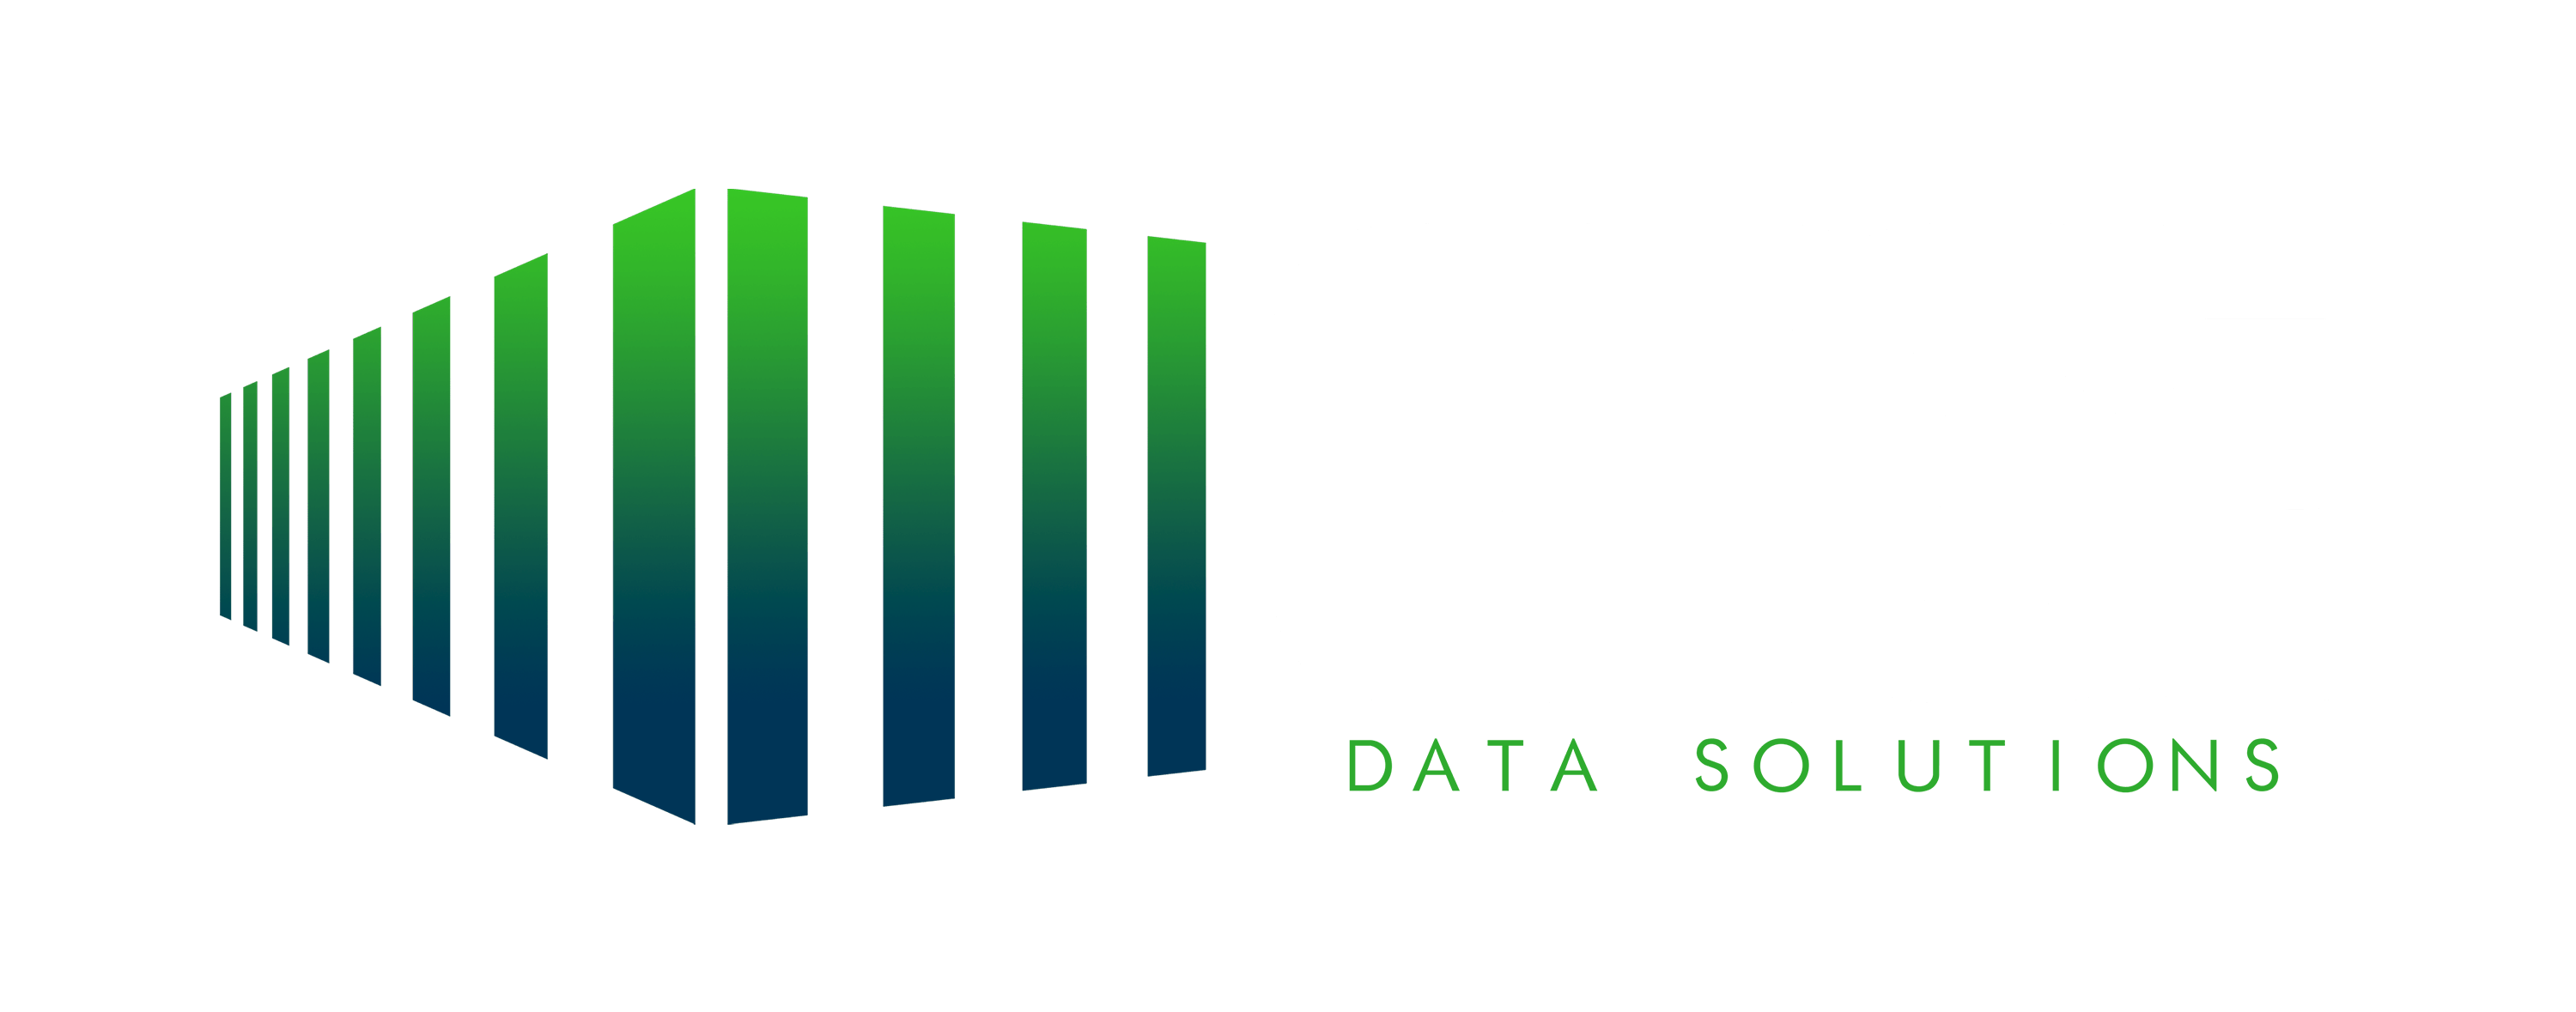 Edge Data Solutions